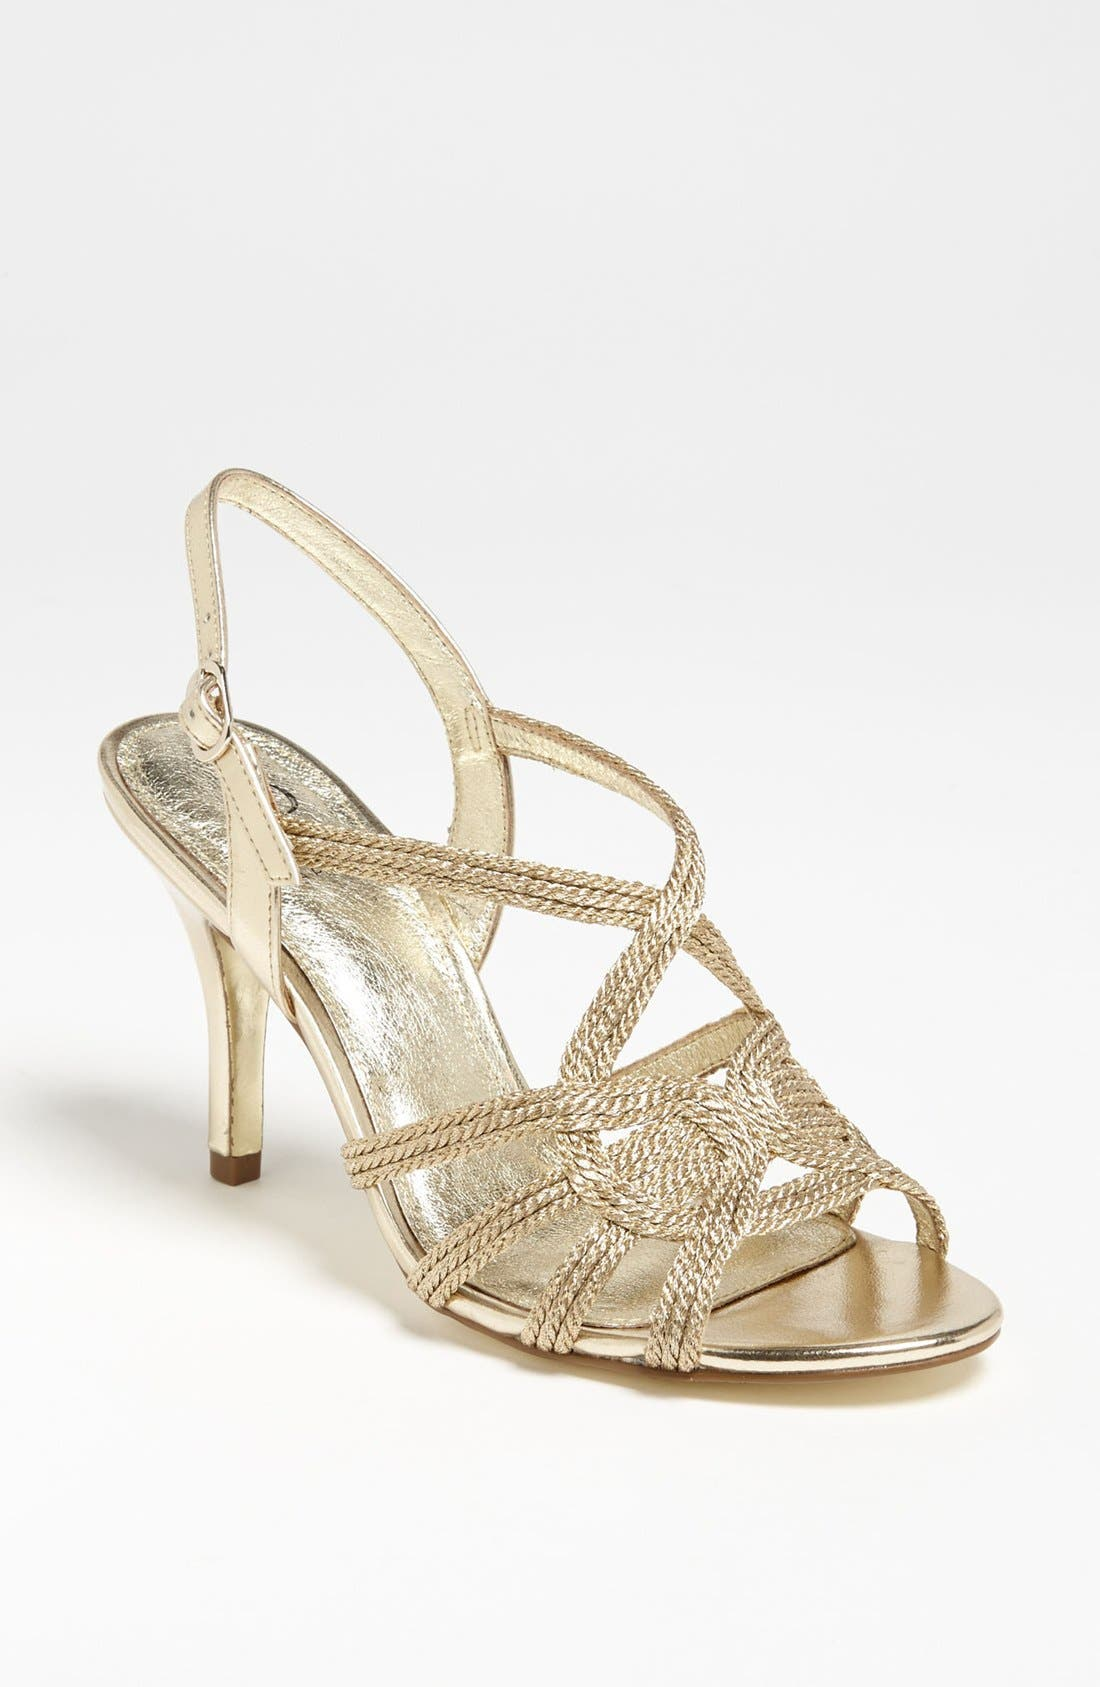 Main Image - Adrianna Papell 'Michele' Sandal